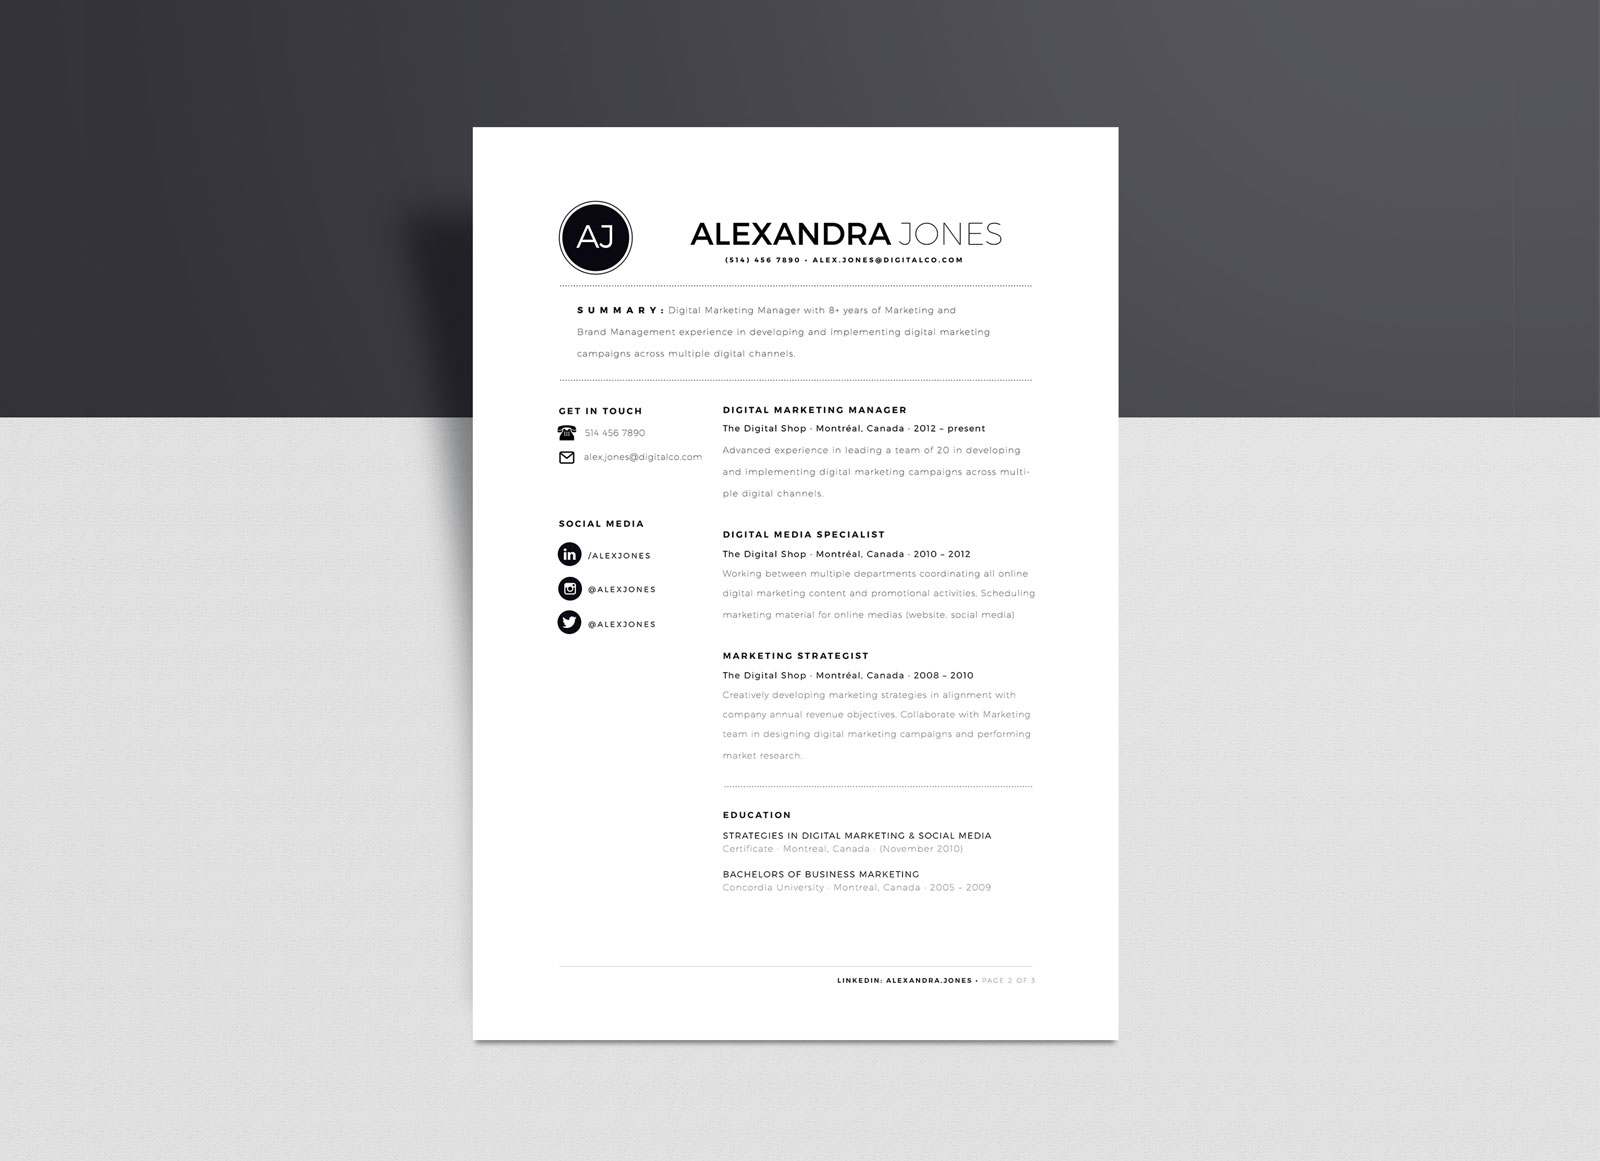 free minimalist resume template in word format good minimalistic air force address for Resume Minimalist Word Resume Template